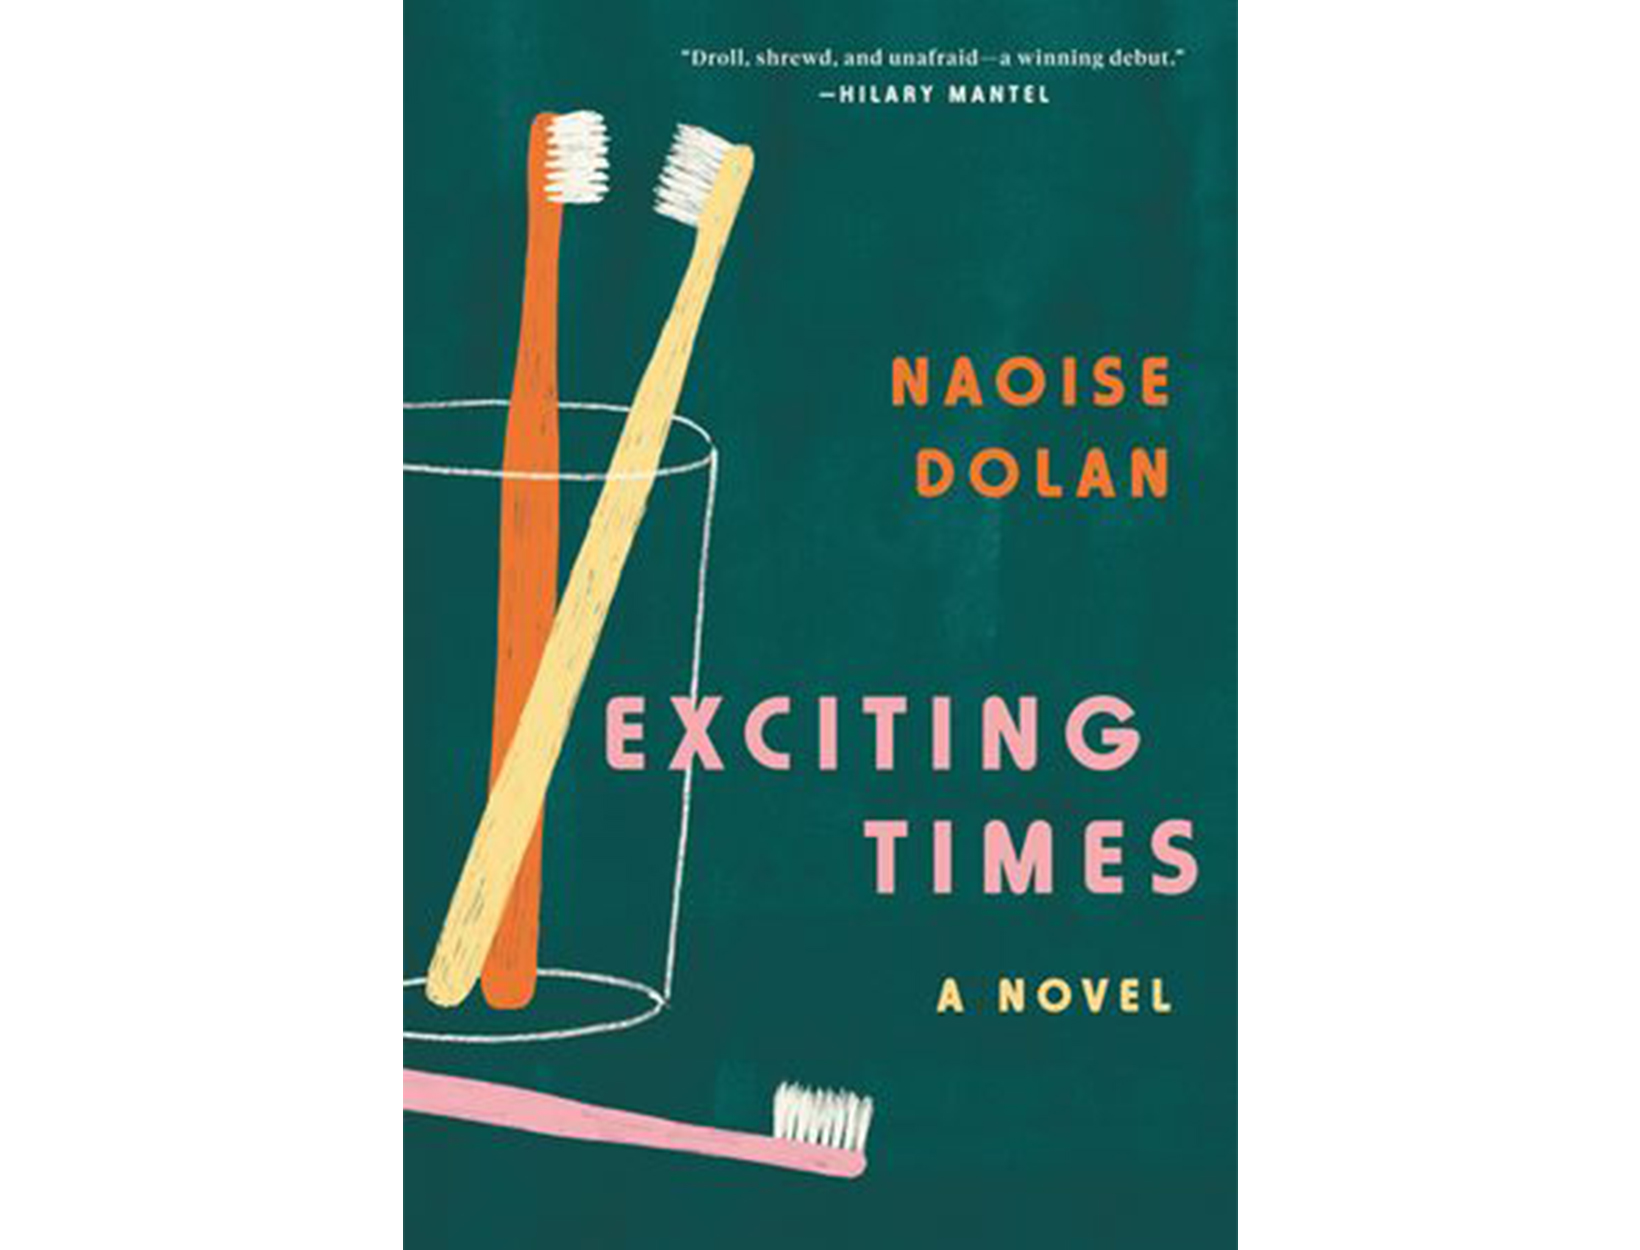 <em>Exciting Times</em> by Naoise Dolan